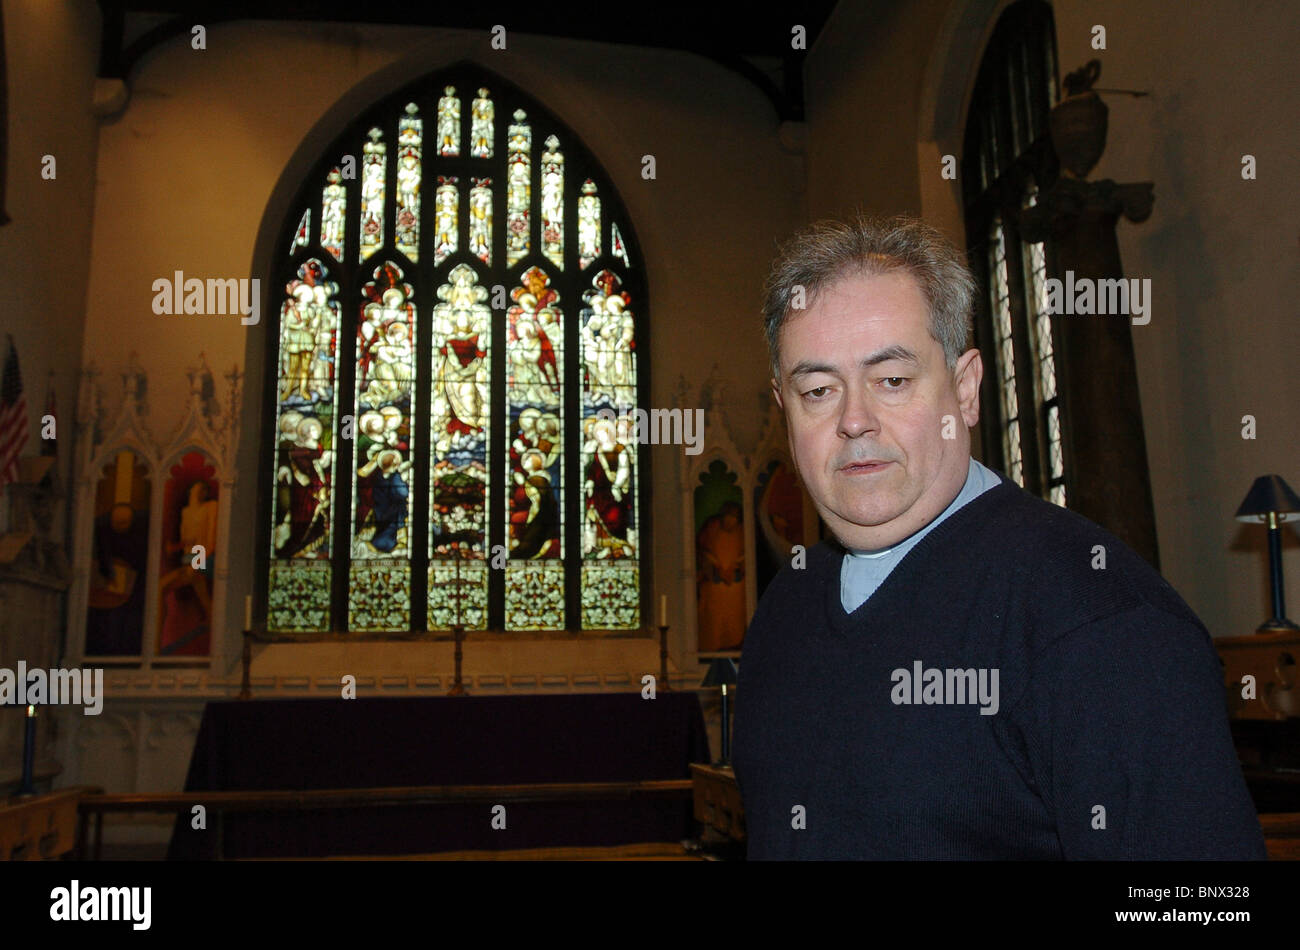 The Rector, The Reverend Michael Trodden, at St Andrews, Ampthill, Bedfordshire, UK - Stock Image